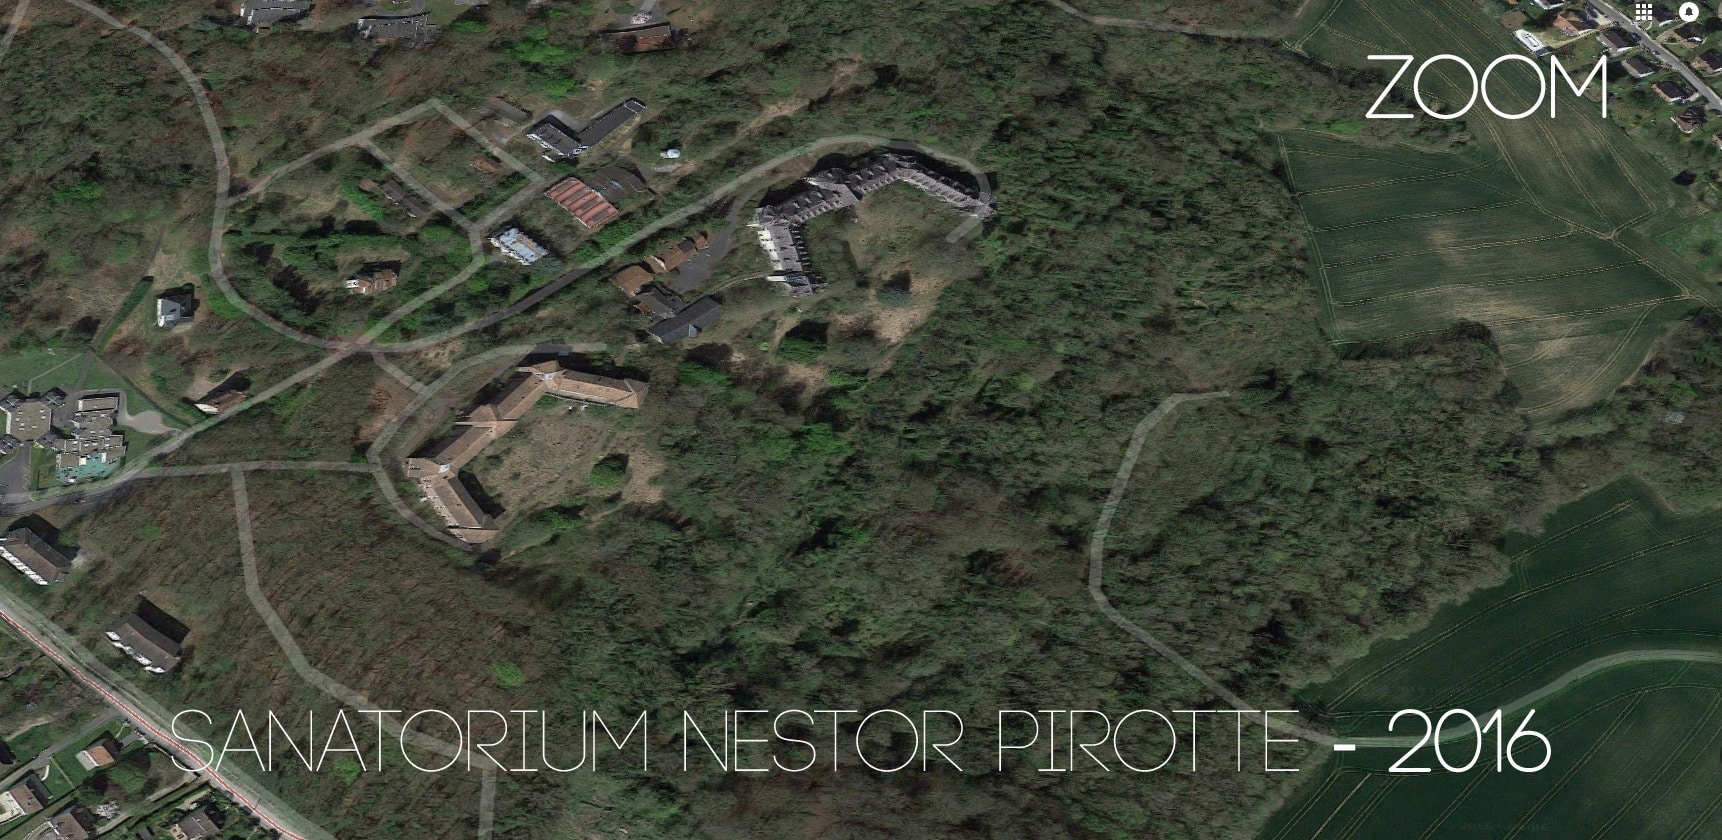 sanatorium-nestor-pirotte-map2016zoom